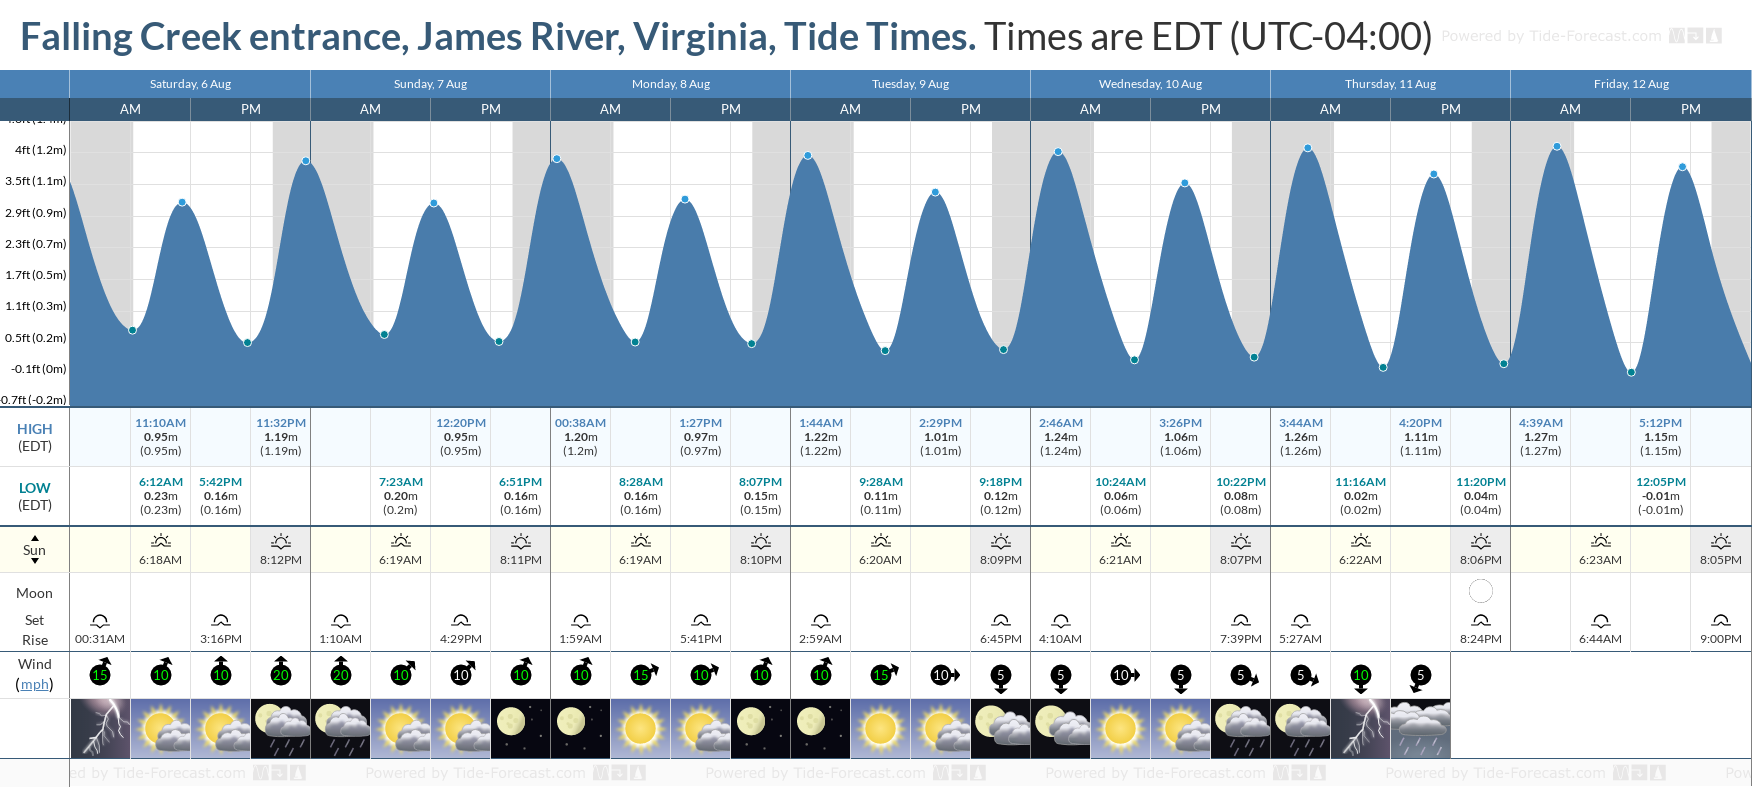 Falling Creek entrance, James River, Virginia Tide Chart including high and low tide tide times for the next 7 days